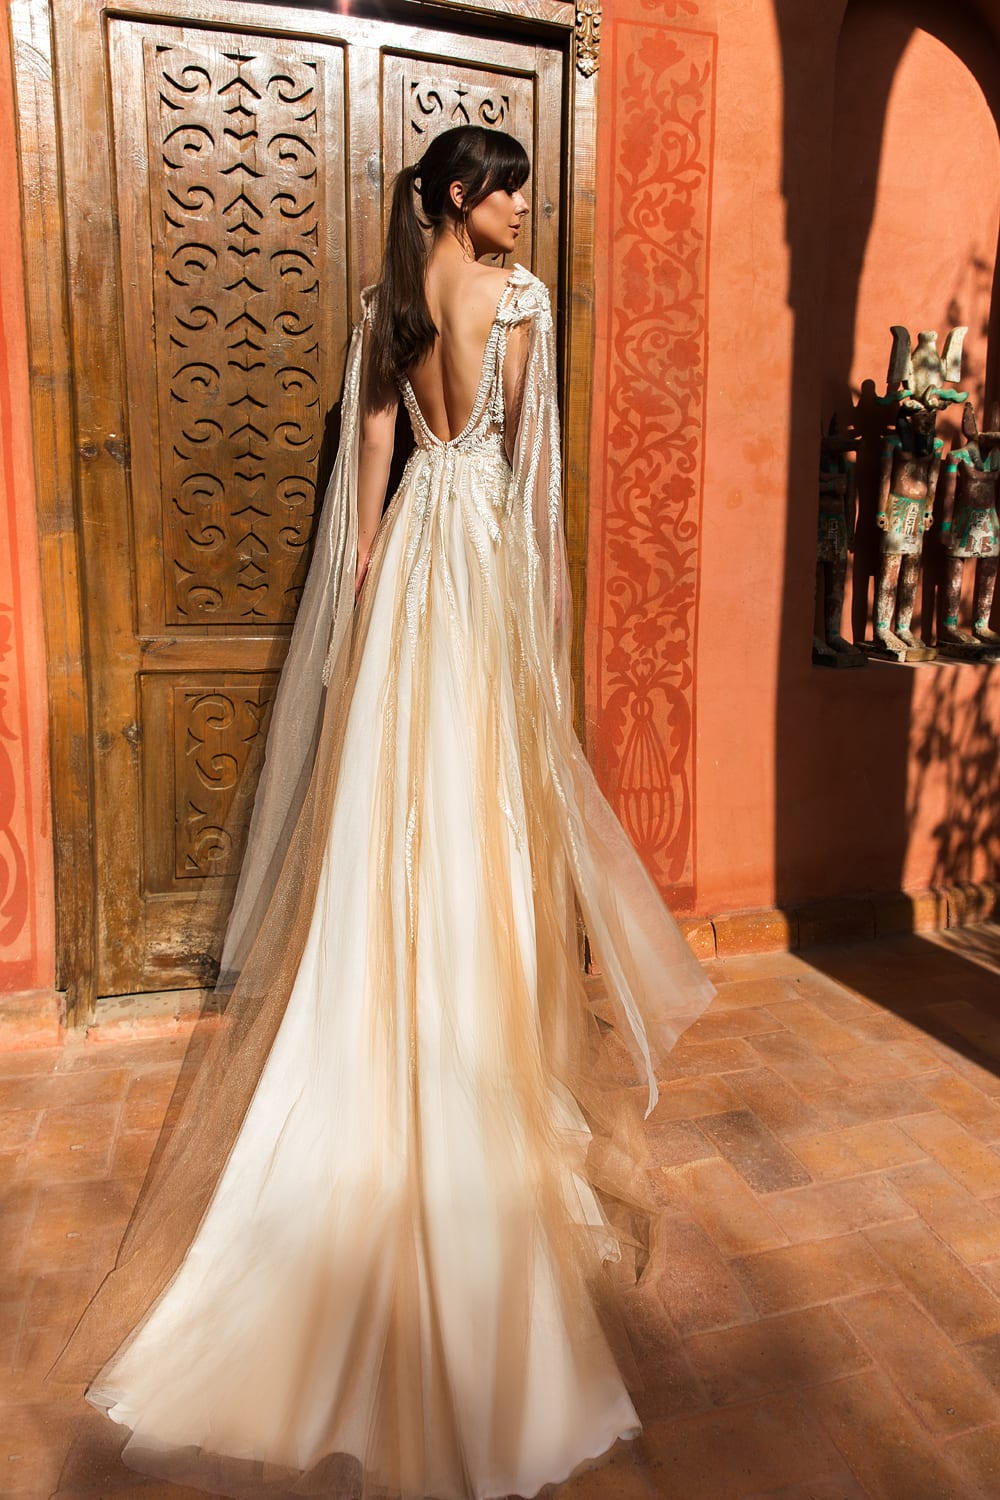 Captivating Wedding Gown Ideas For Women